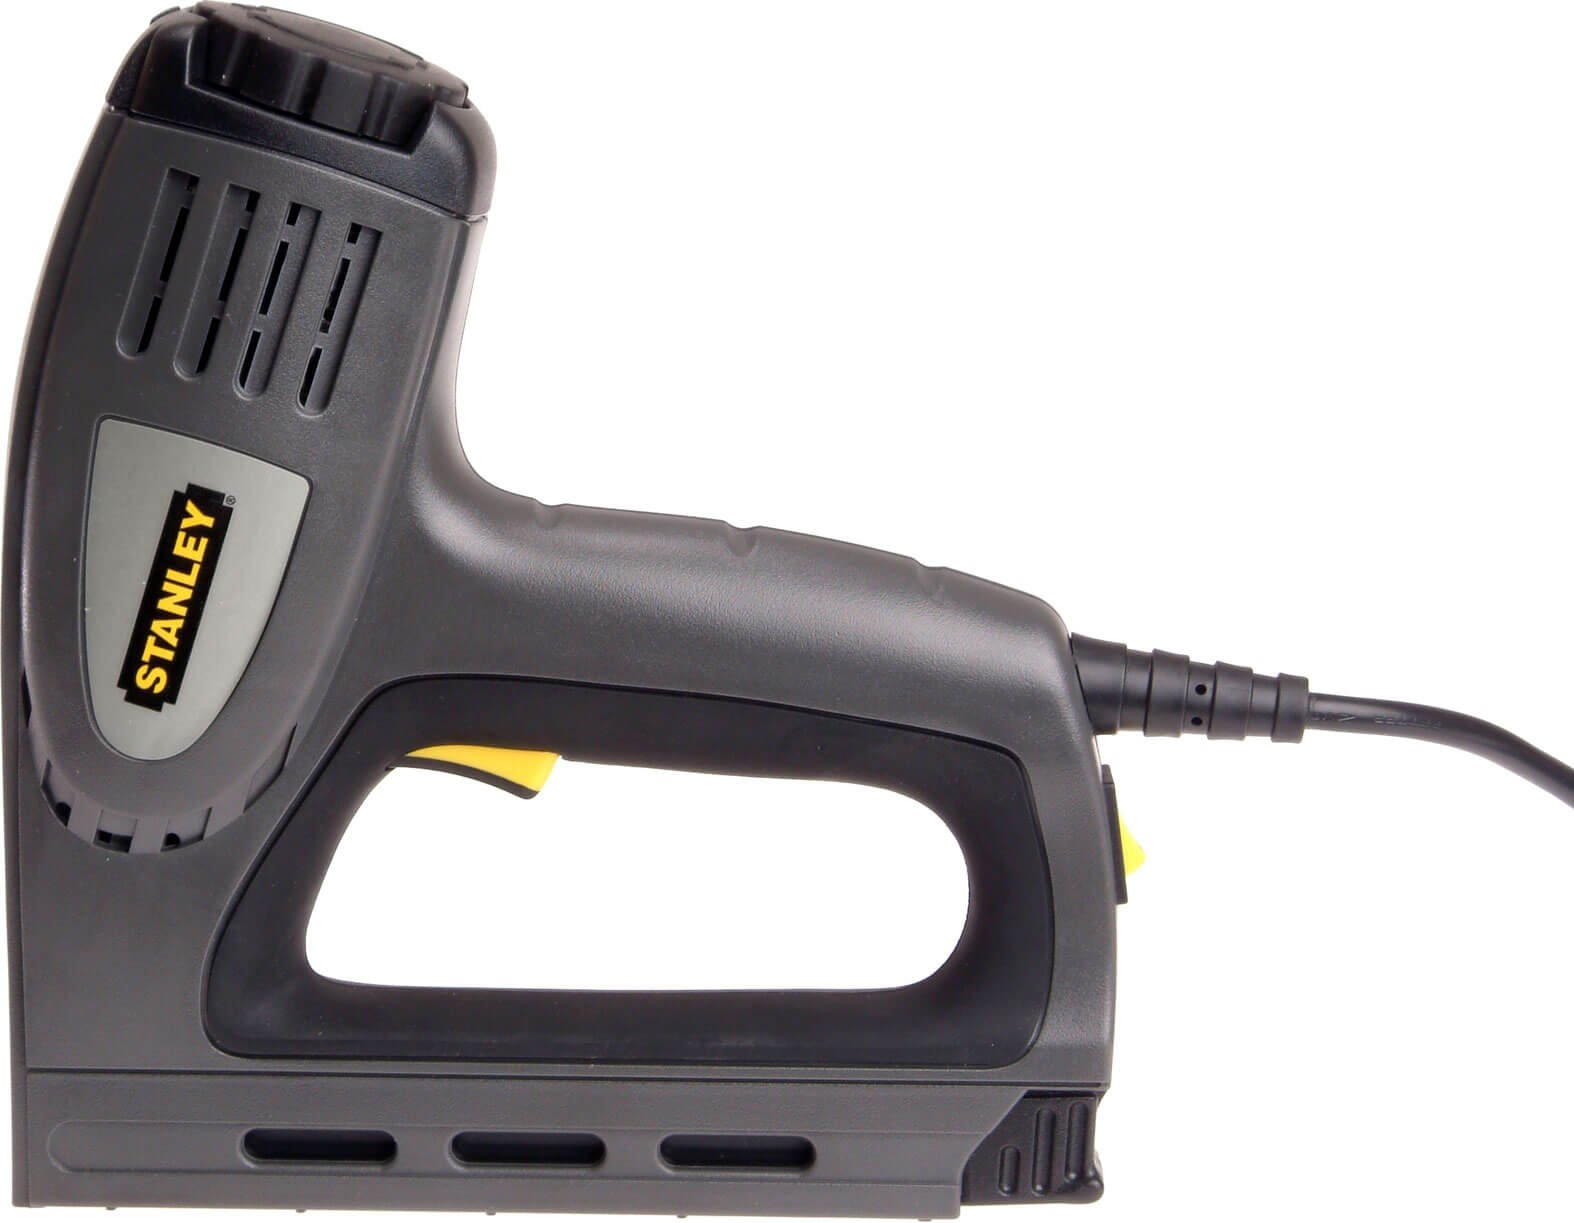 Stanley TRE550 Electric Nail and Staple Gun 240v